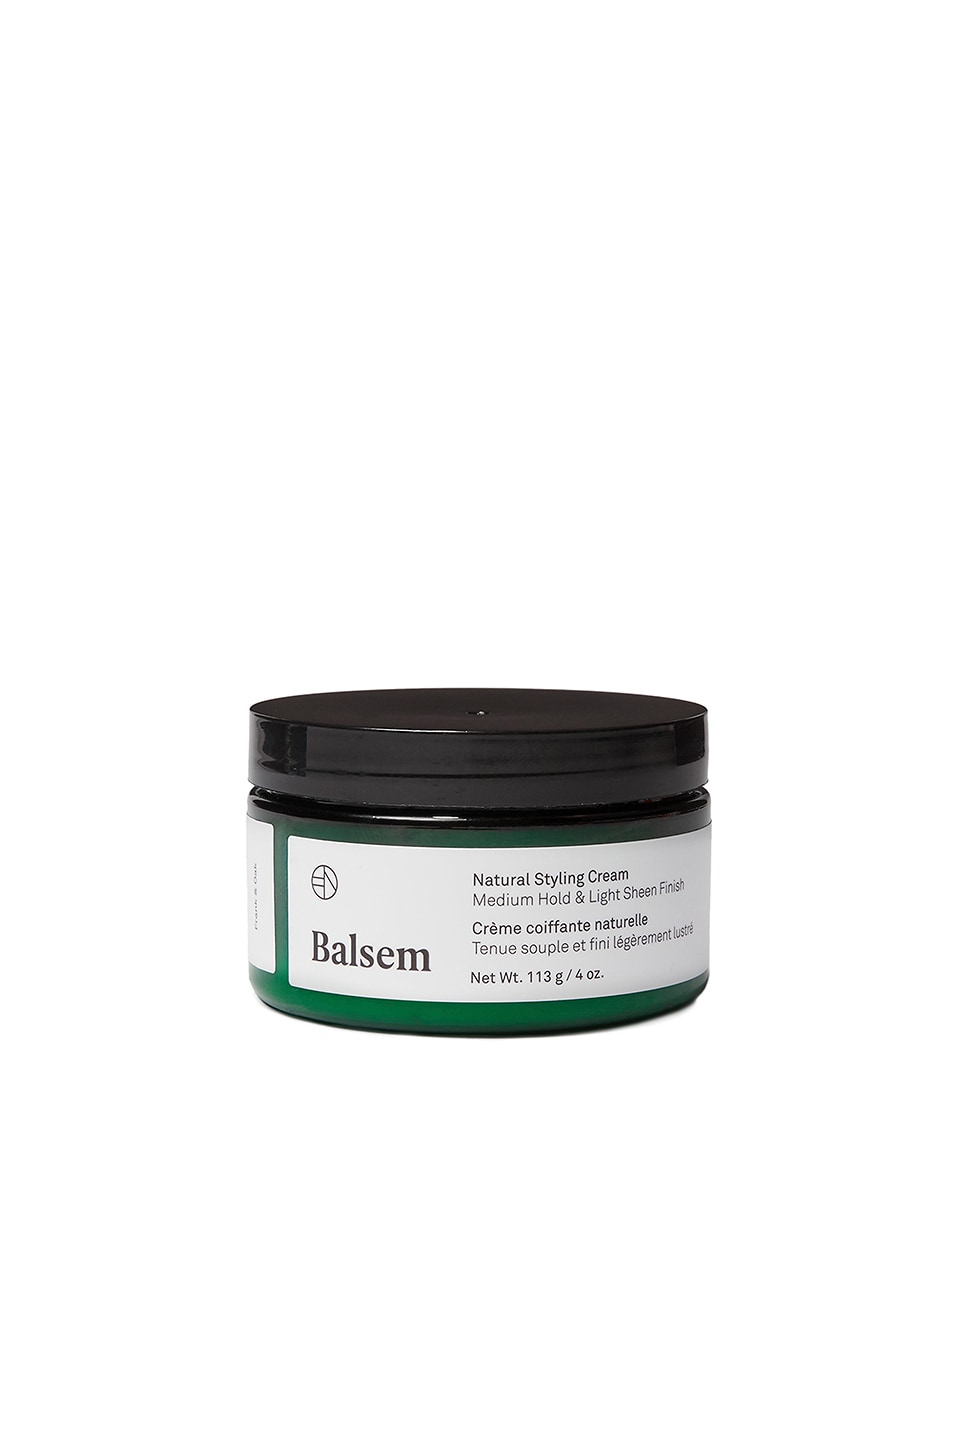 Natural Styling Cream by Balsem